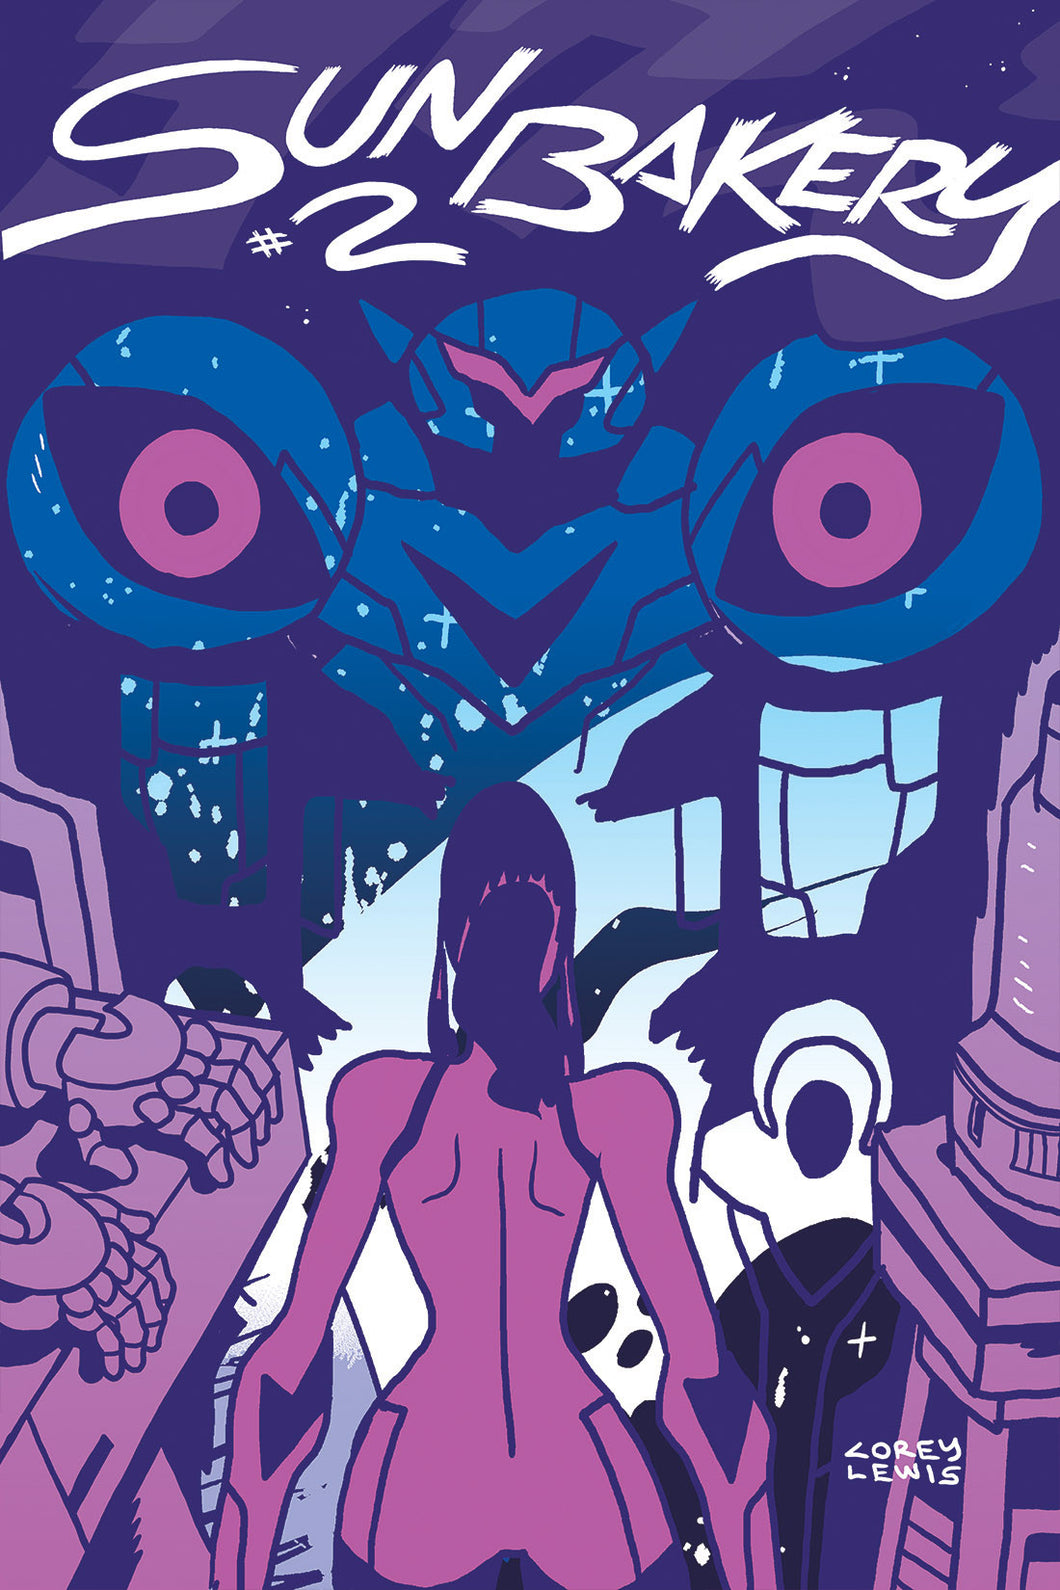 Sun Bakery 2 by Corey Lewis